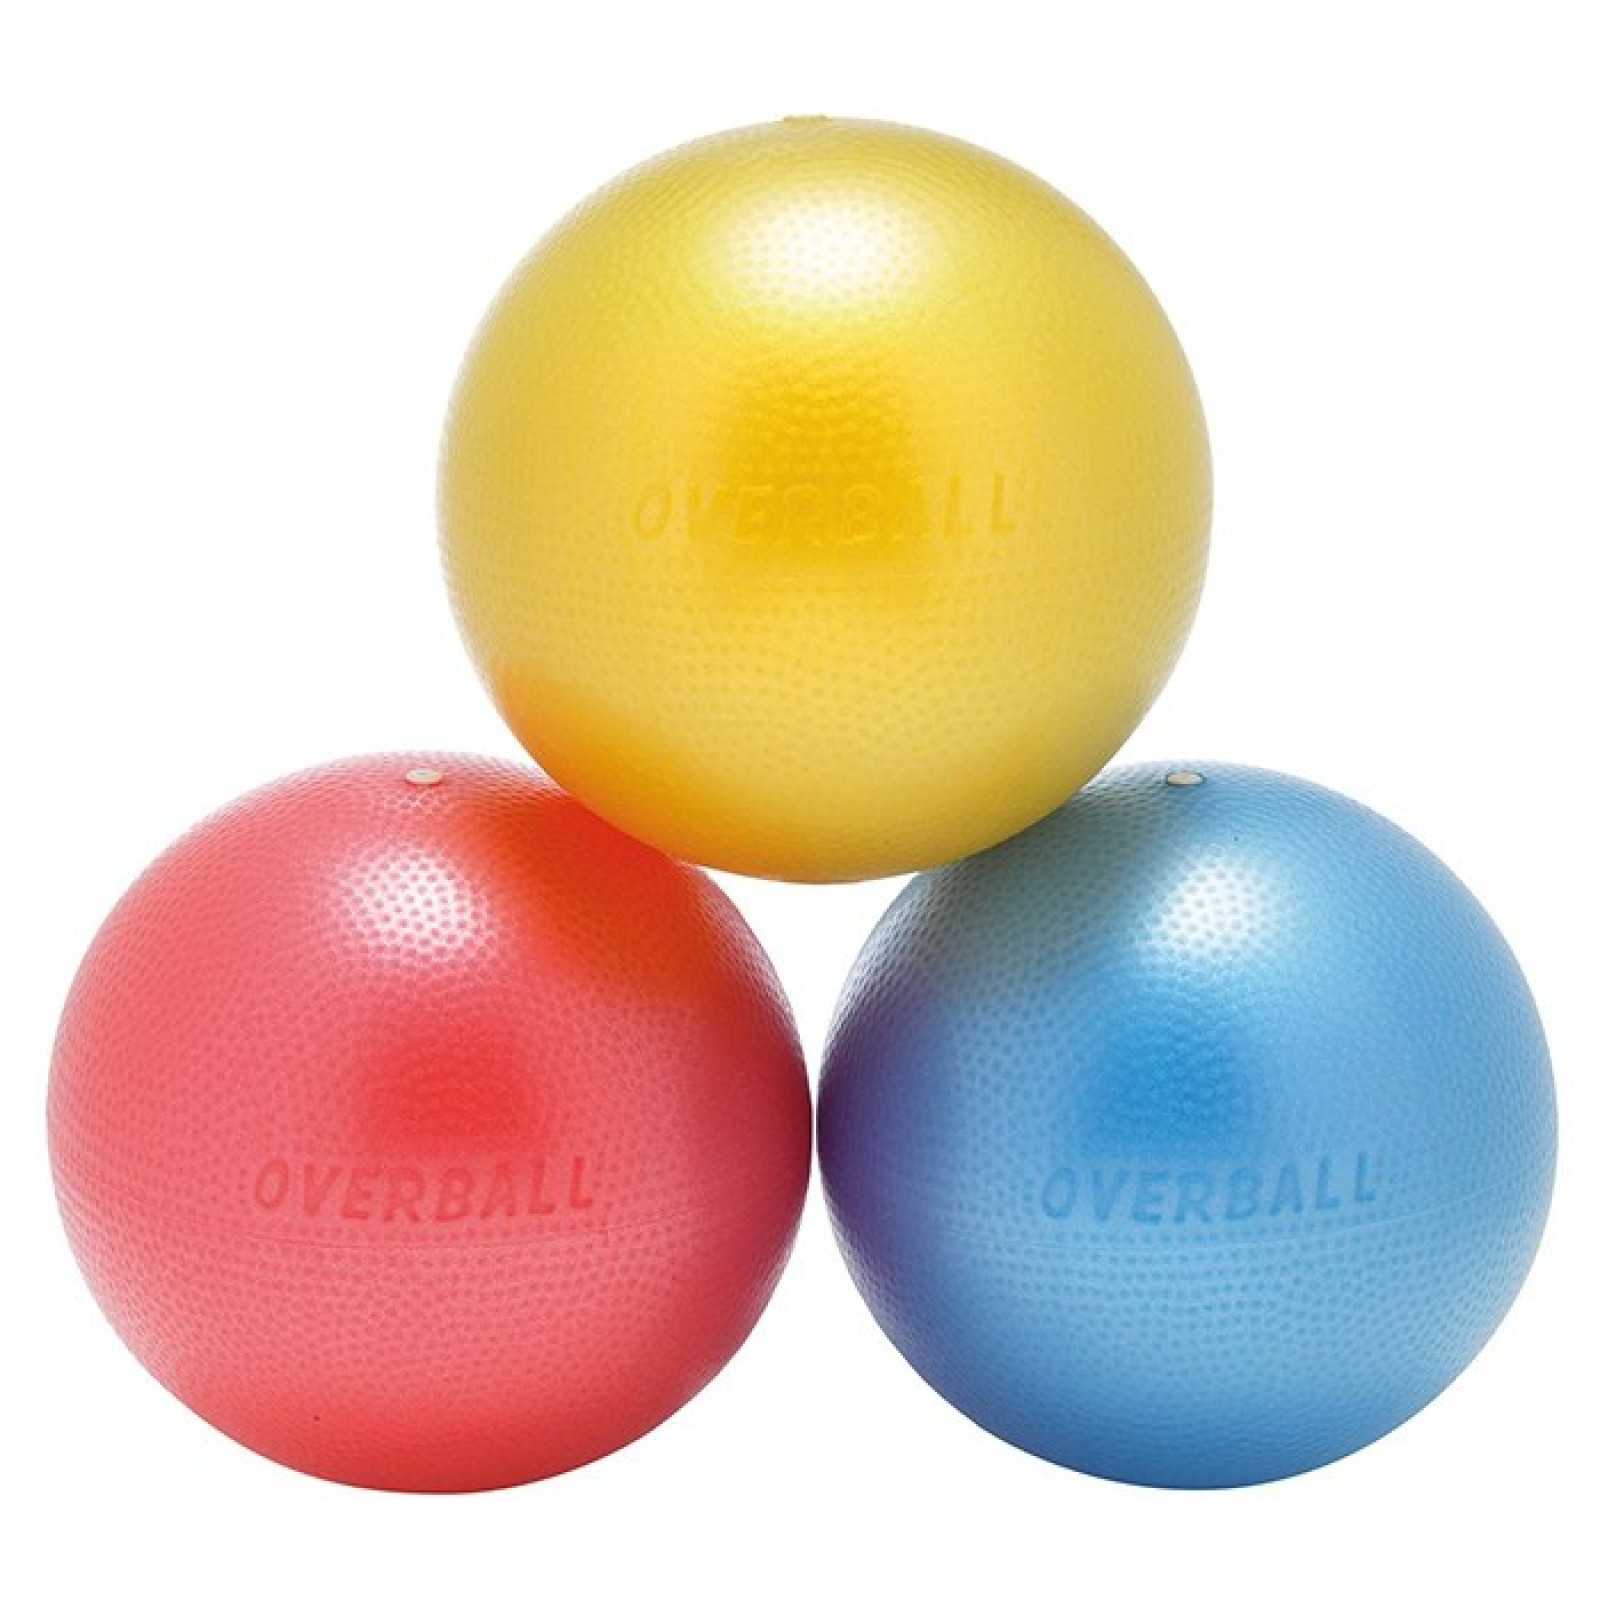 Softgym Over ball (25 cm)